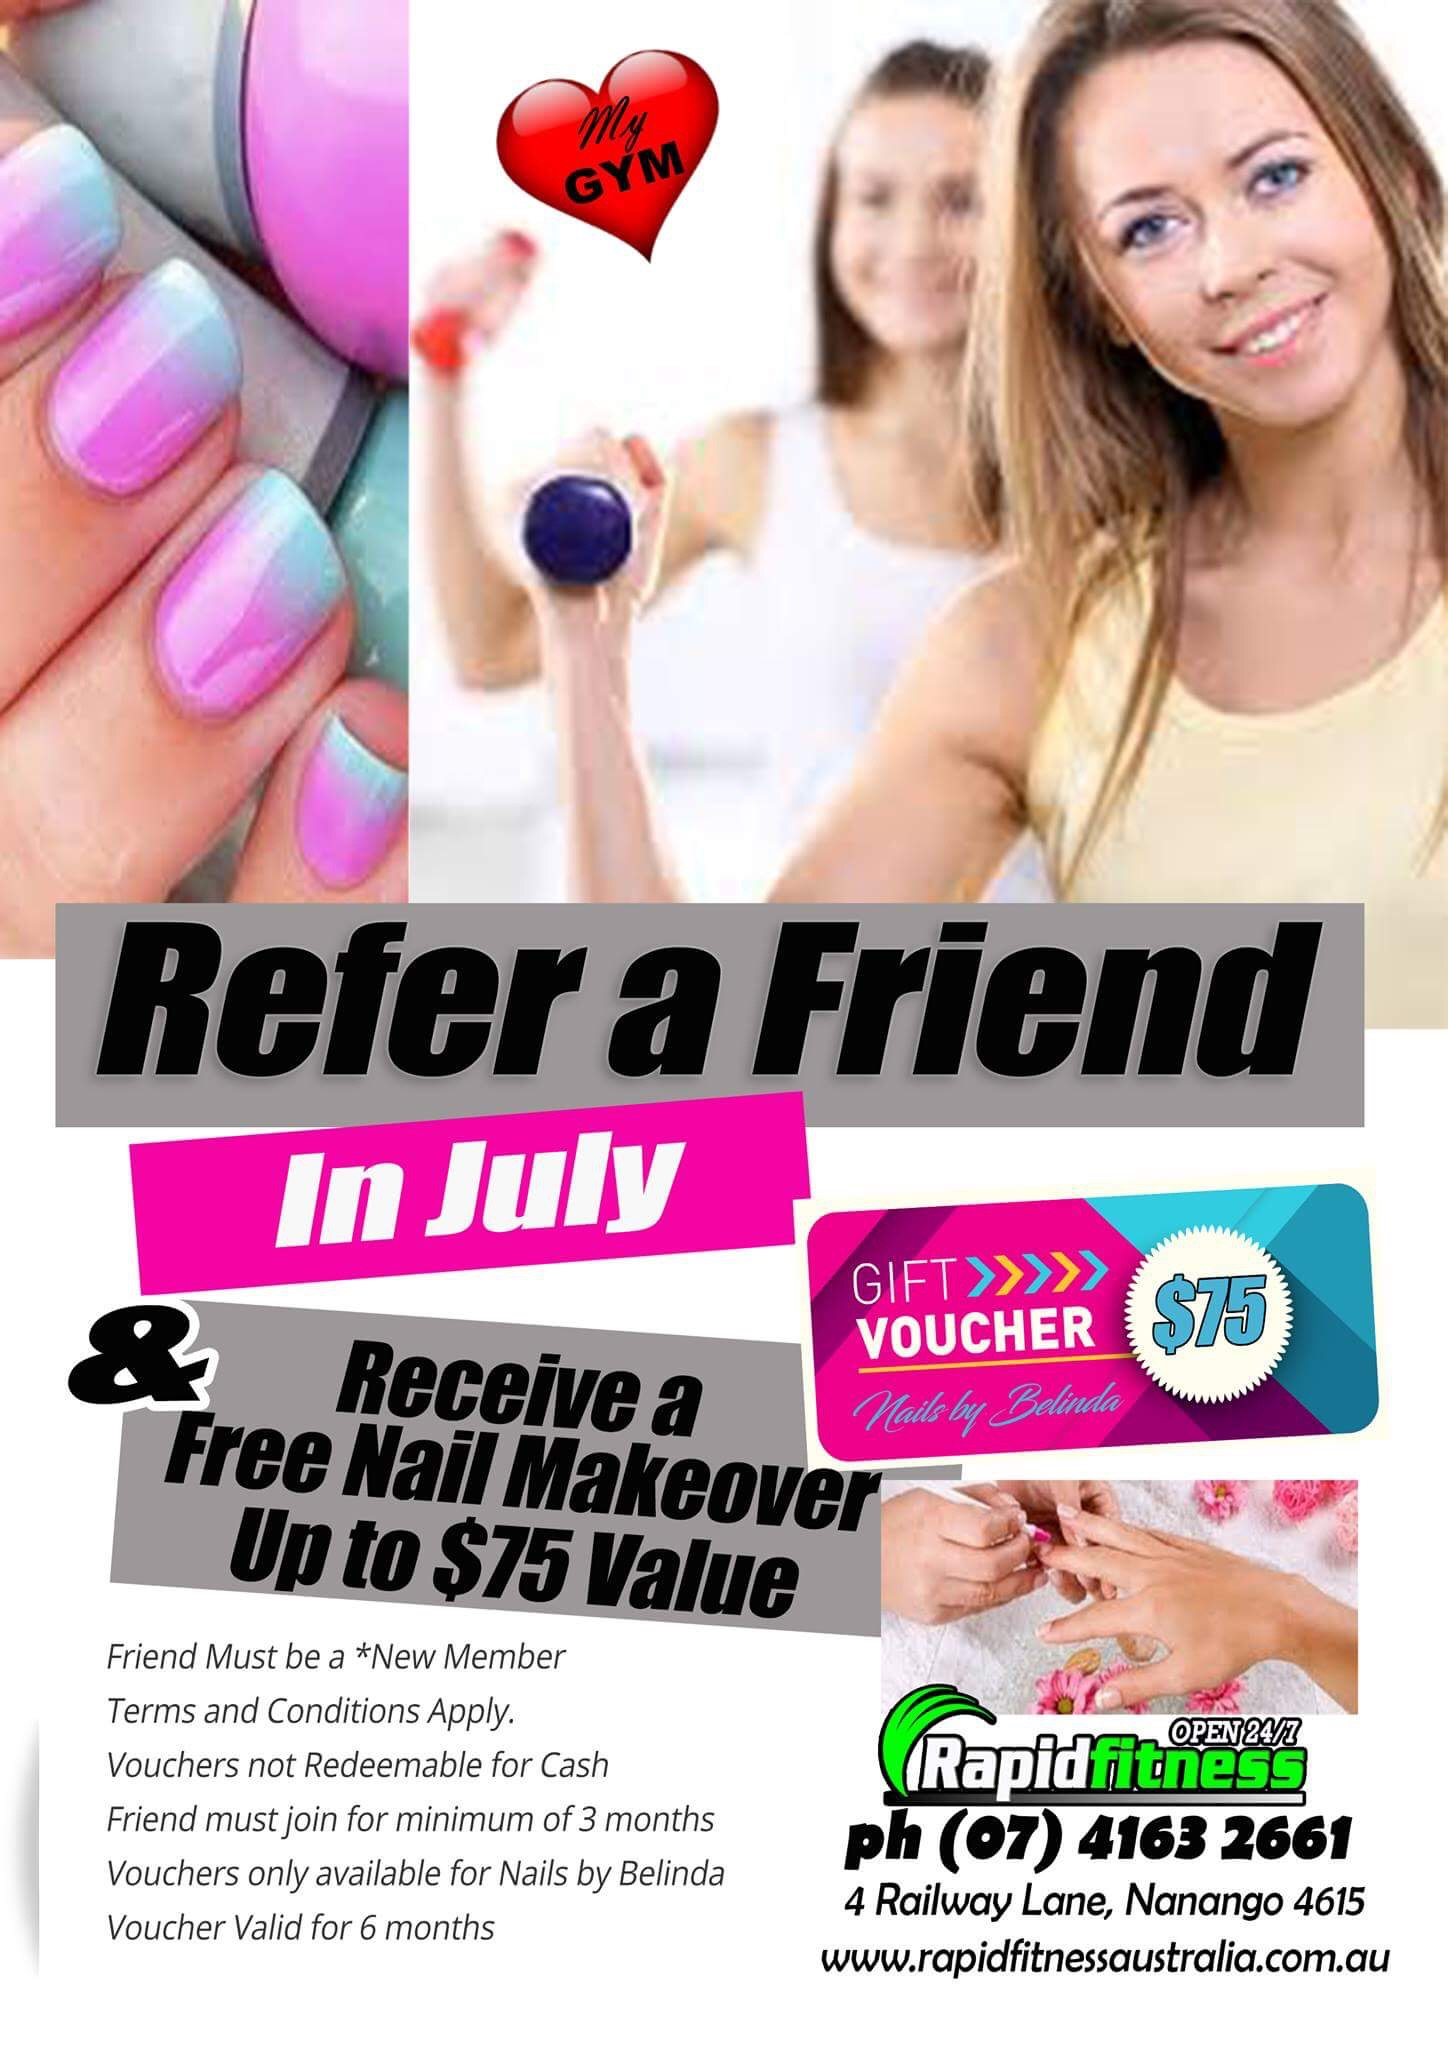 Refer a Friend in July and receive a free nail makeover!